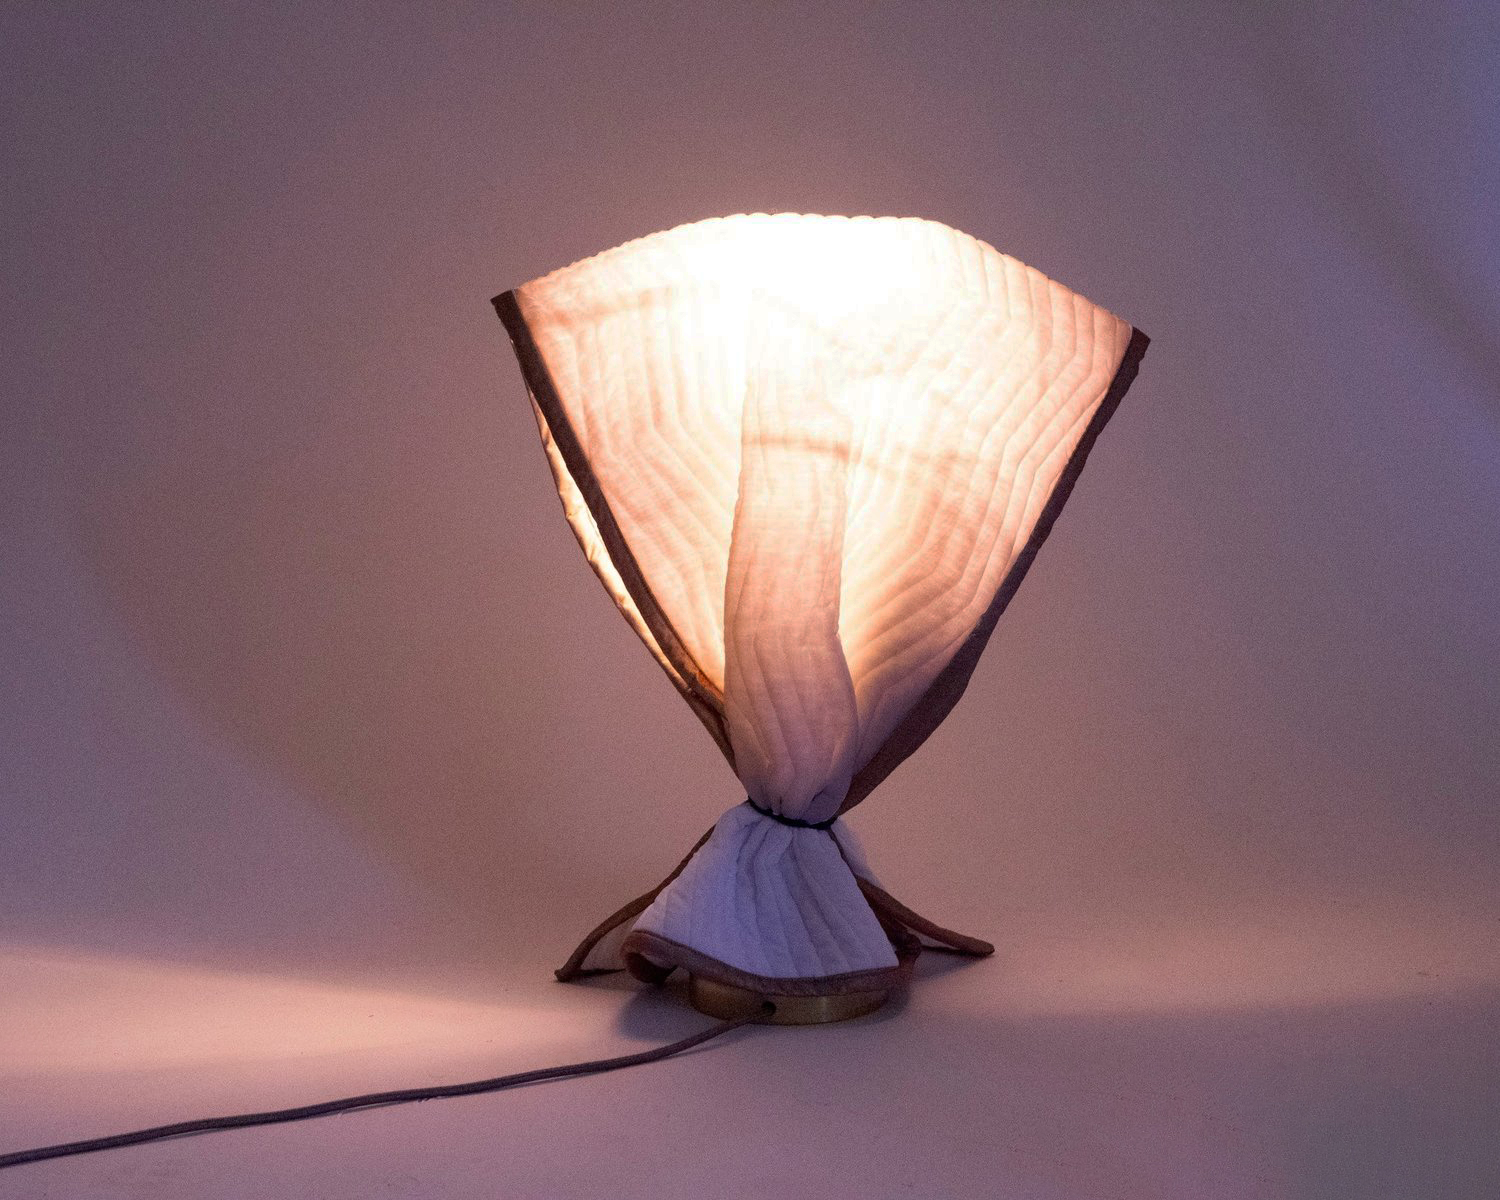 Quilted Lamp.jpg